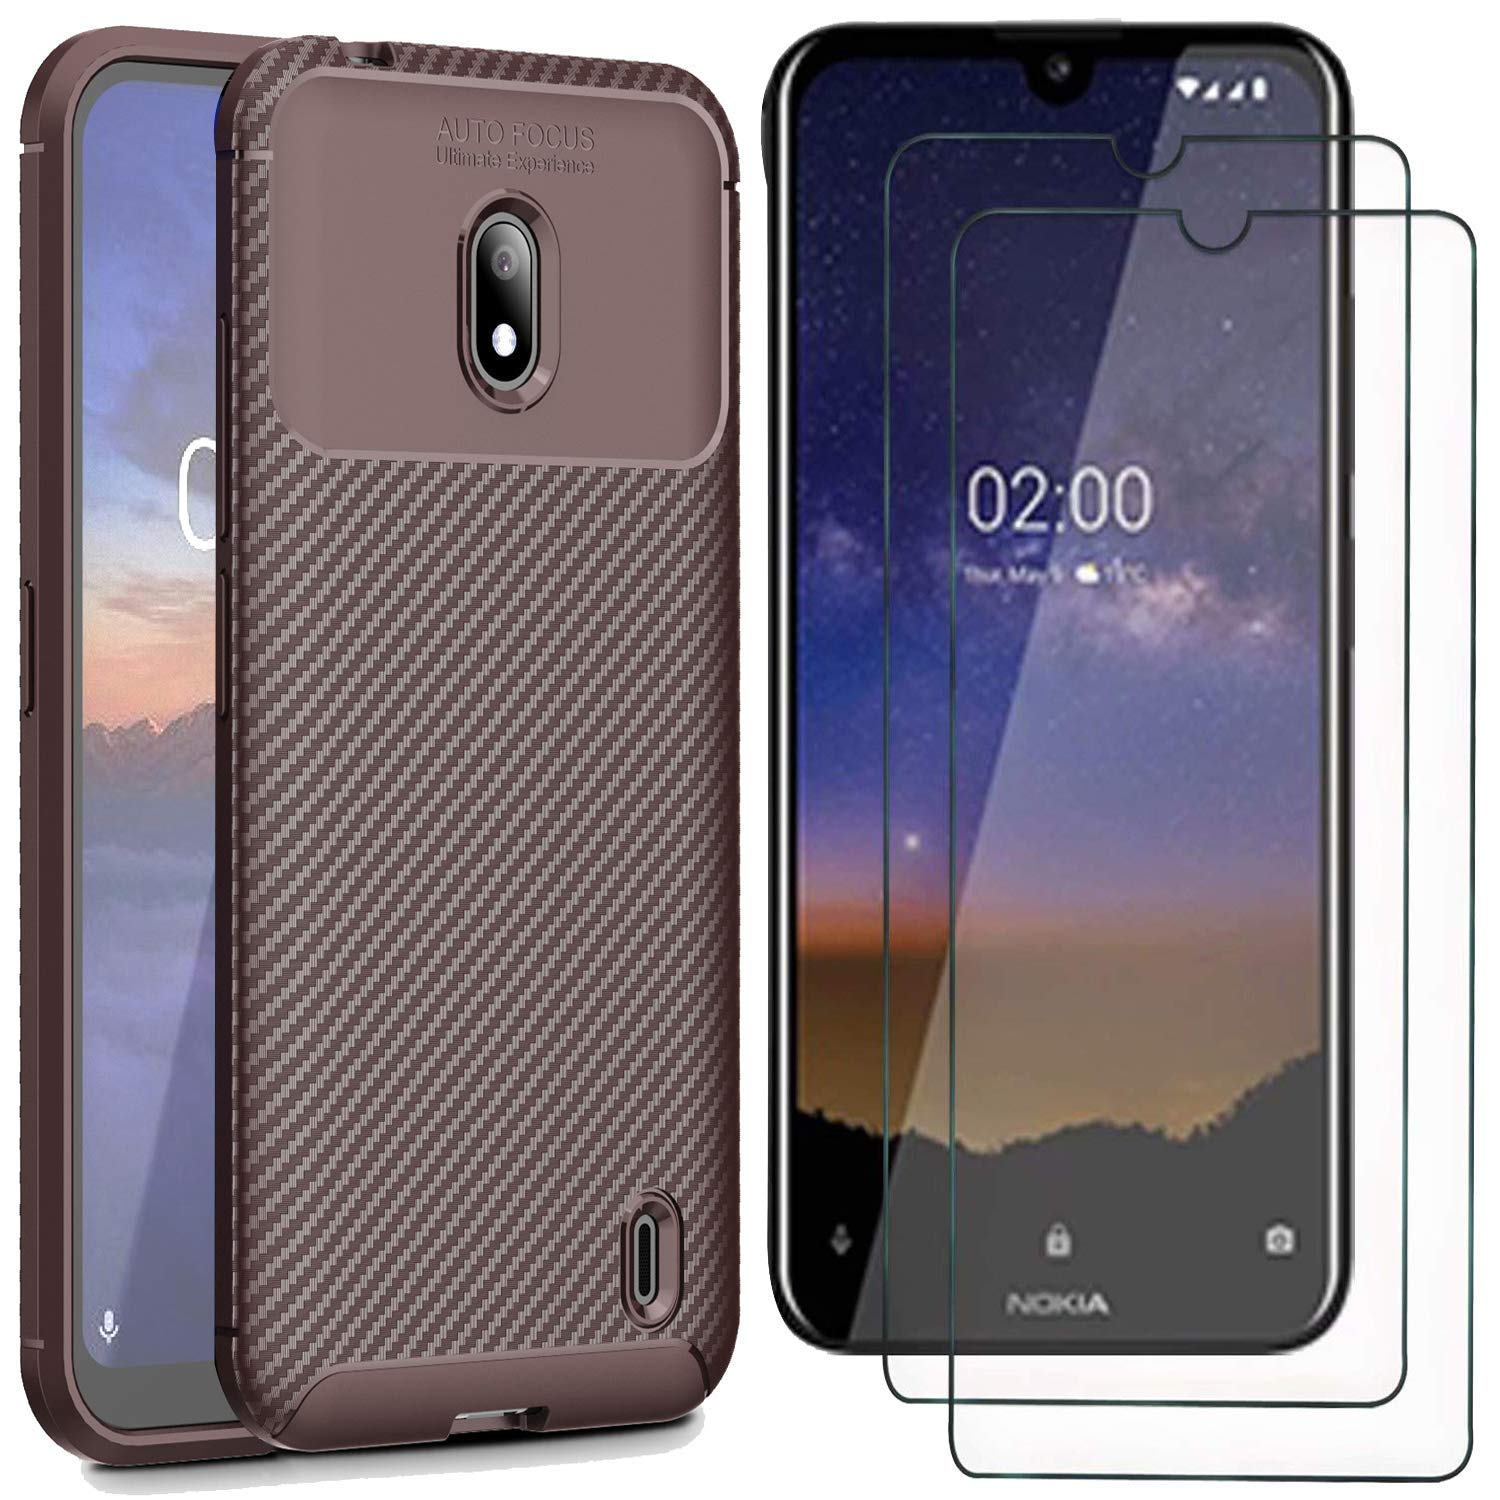 9H Tempered Glass Screen Protector for Nokia 1 Smartphone 2 in 1 Anti-Scratch Navy Nokia 1 Case with Screen Protector, MYLBOO Soft Slim Flex TPU Silicone Phone Case